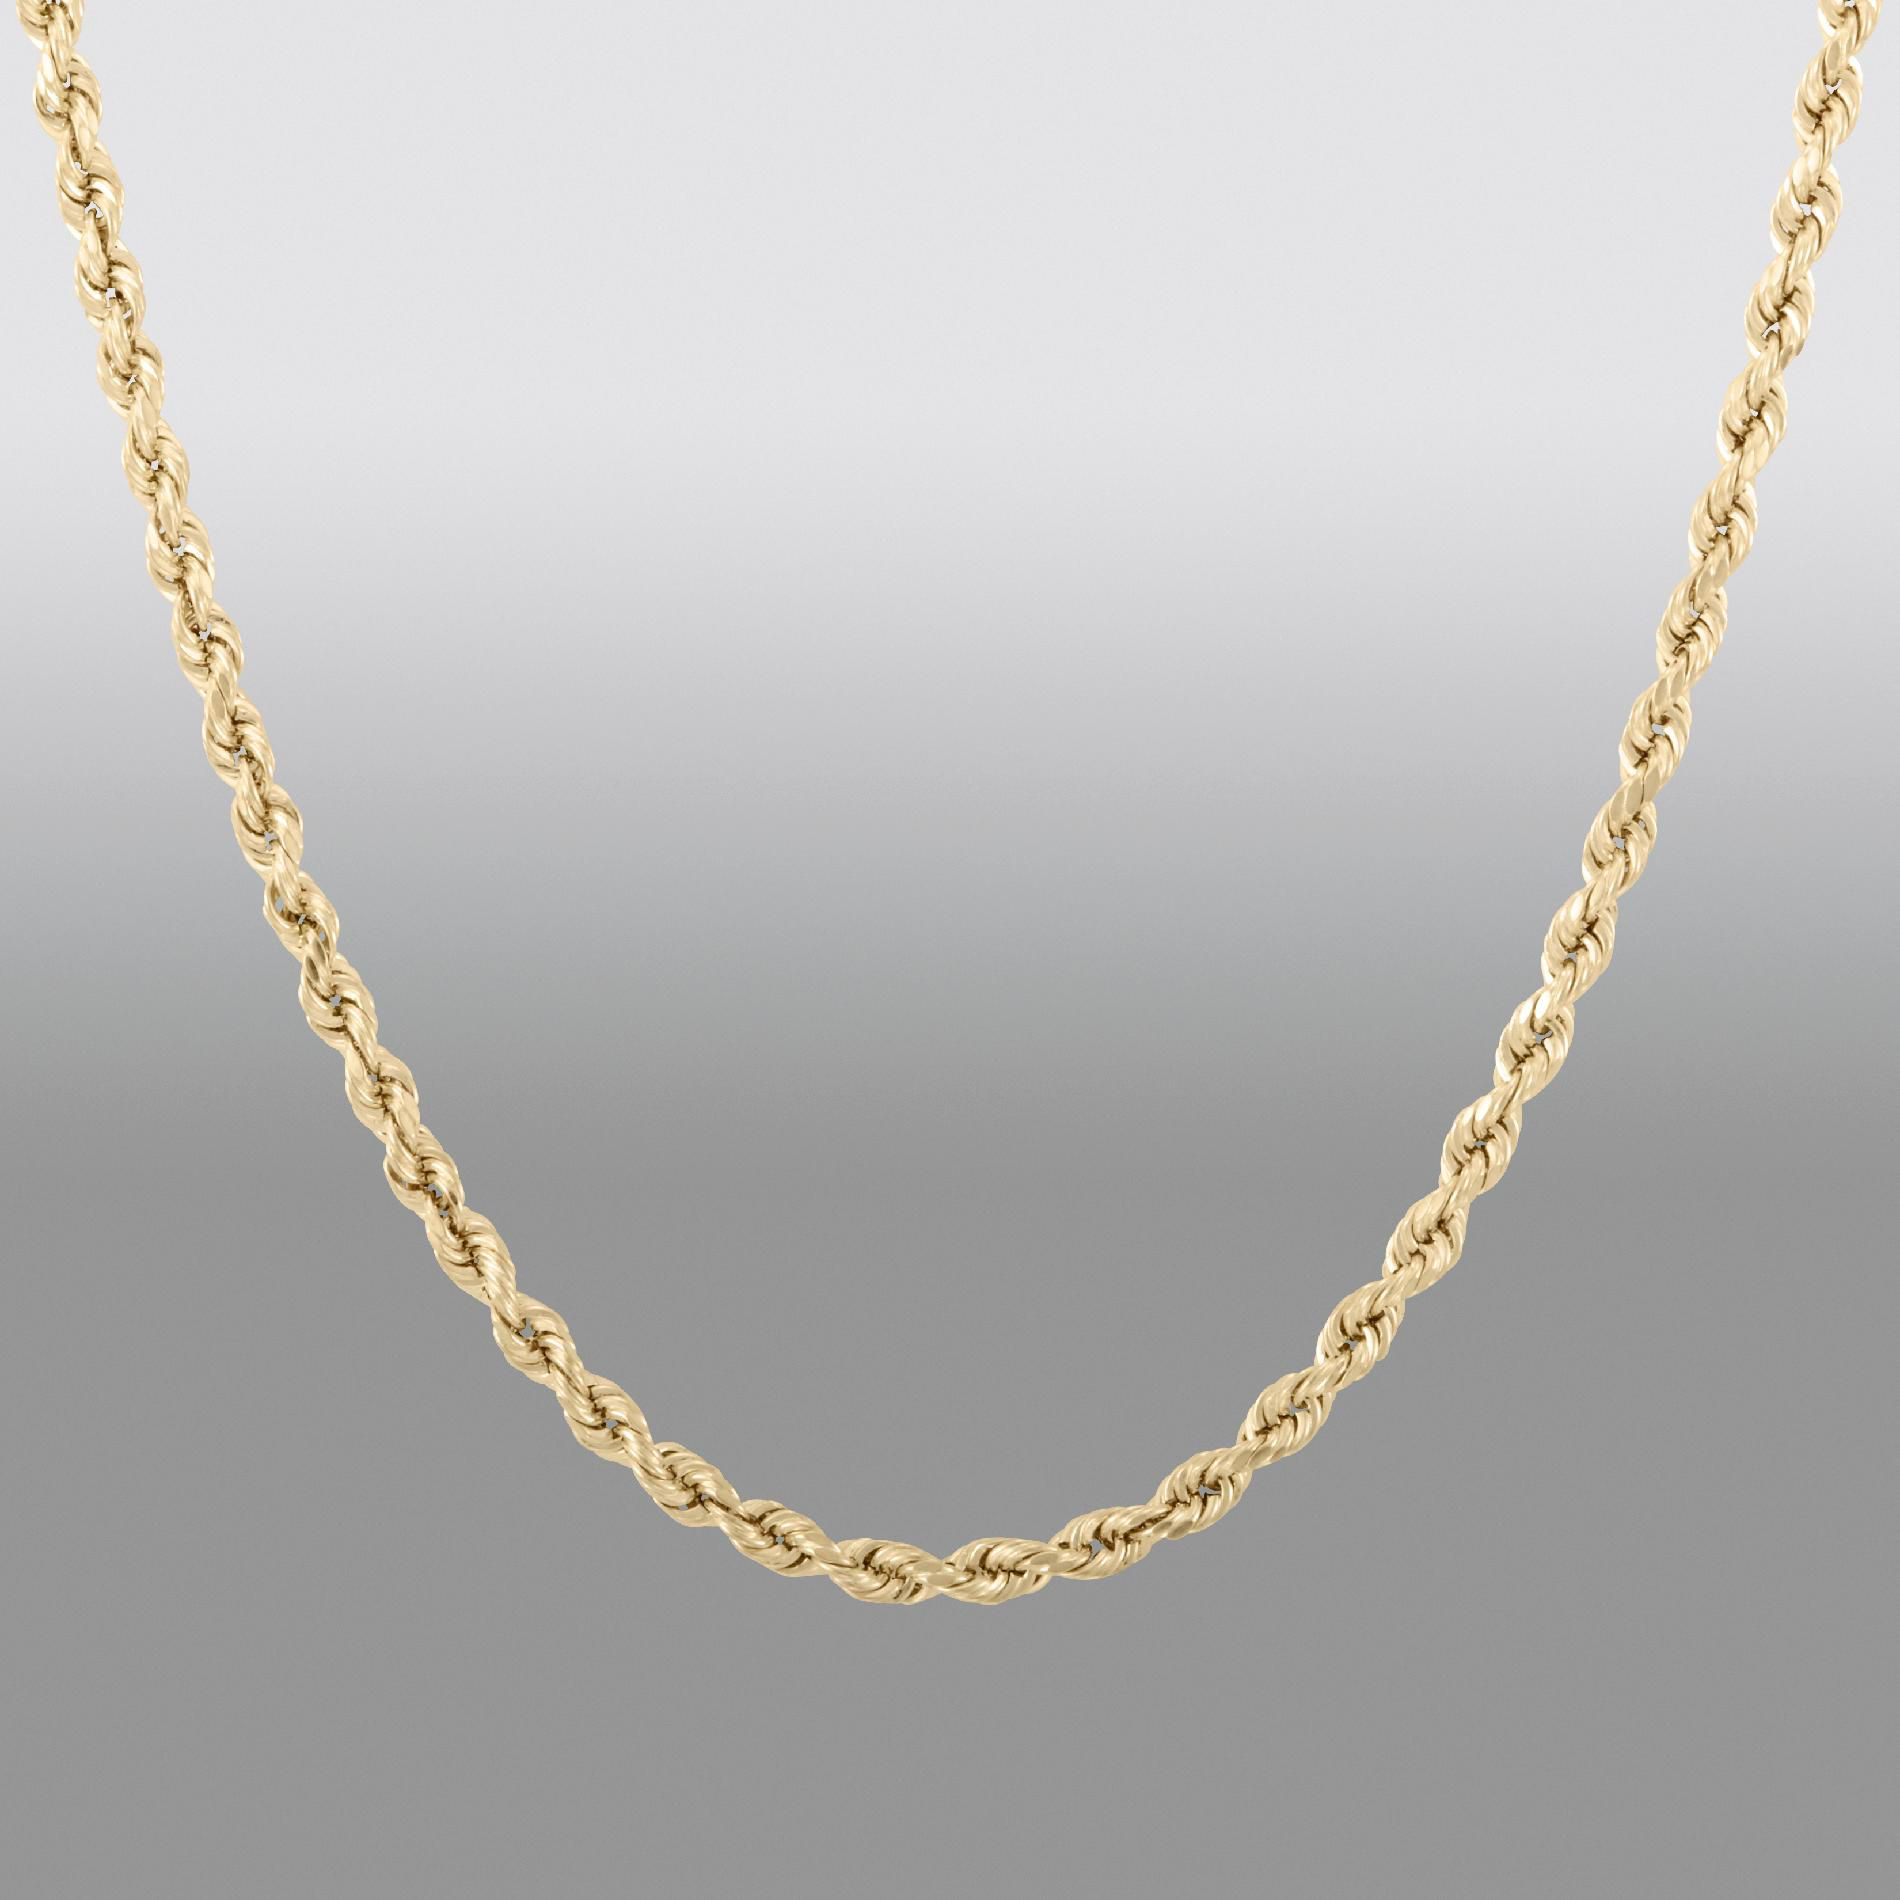 "10k Yellow Gold 20"""" Rope Chain"